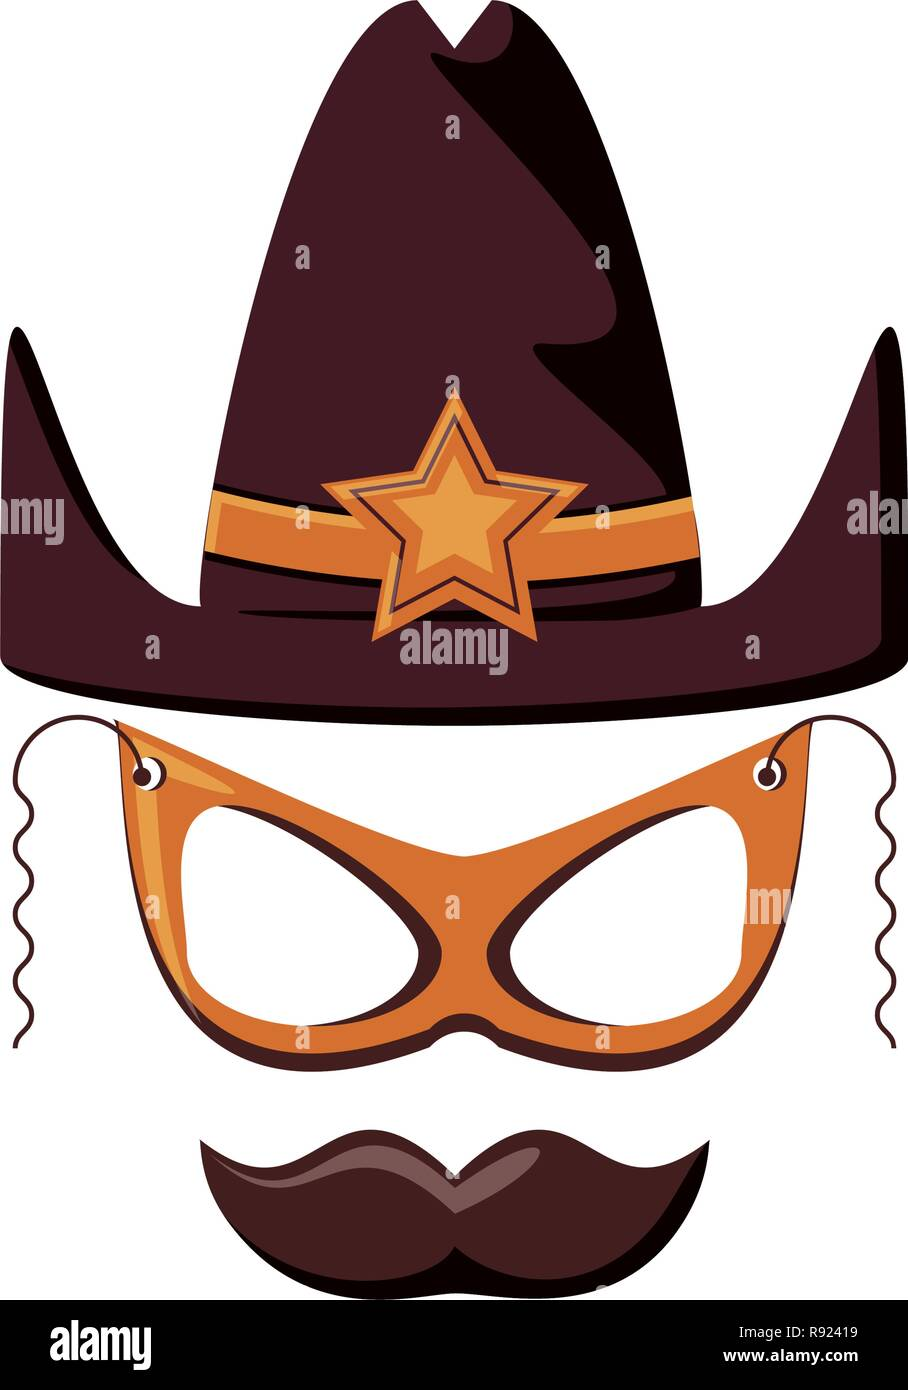 1f63f687 sherif hat with mask and mustache vector illustration design - Stock Vector